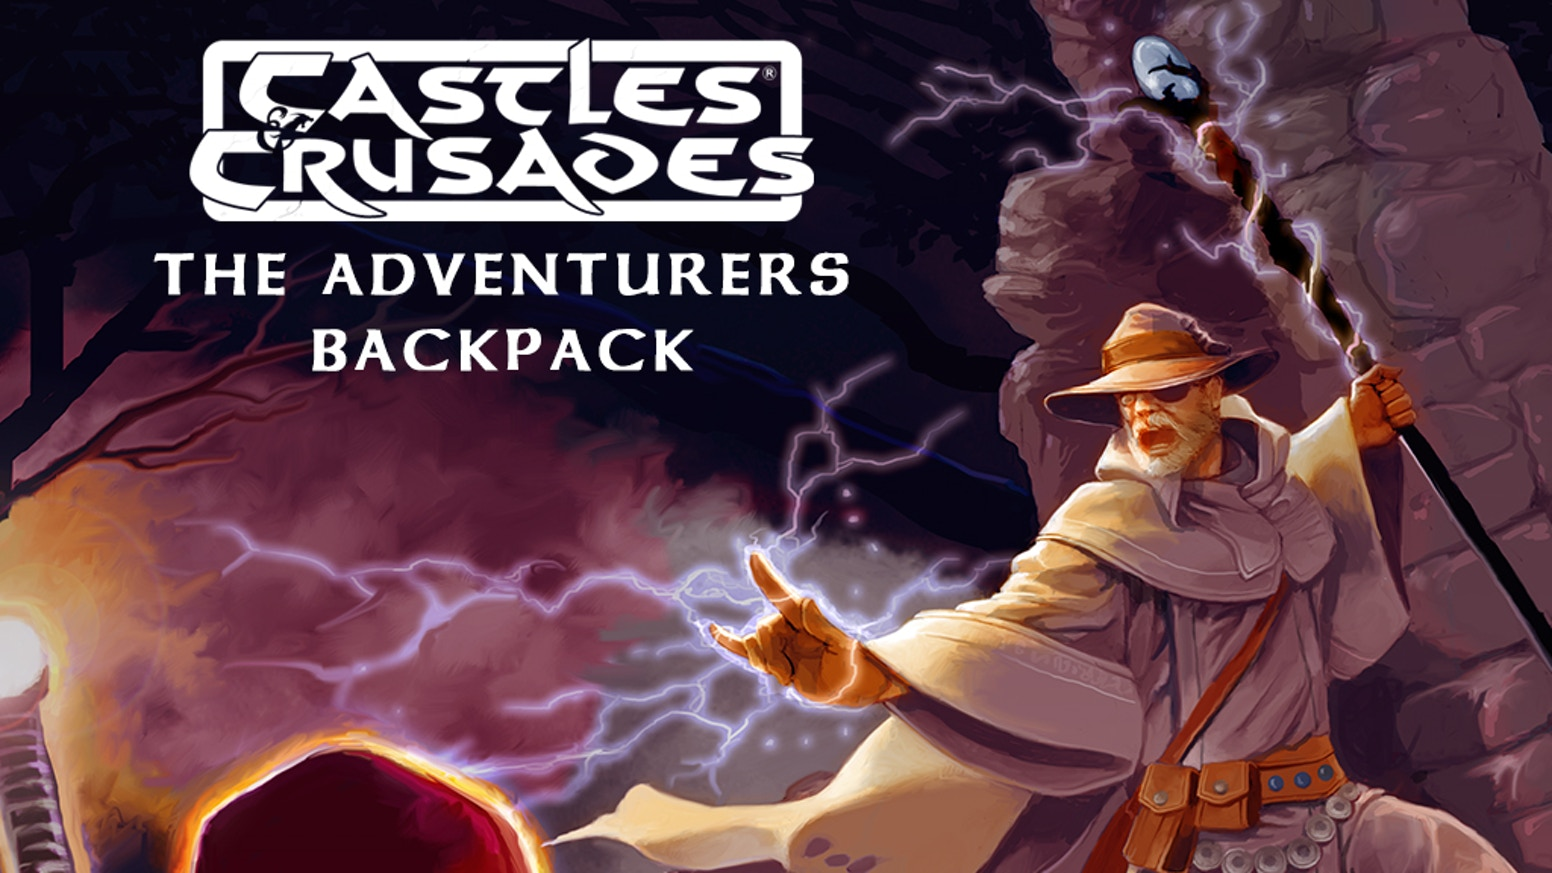 A hard-hitting addition for the fast paced, bare-knuckles, easy-to-learn, fun for all ages, RPG that is Castles & Crusades!